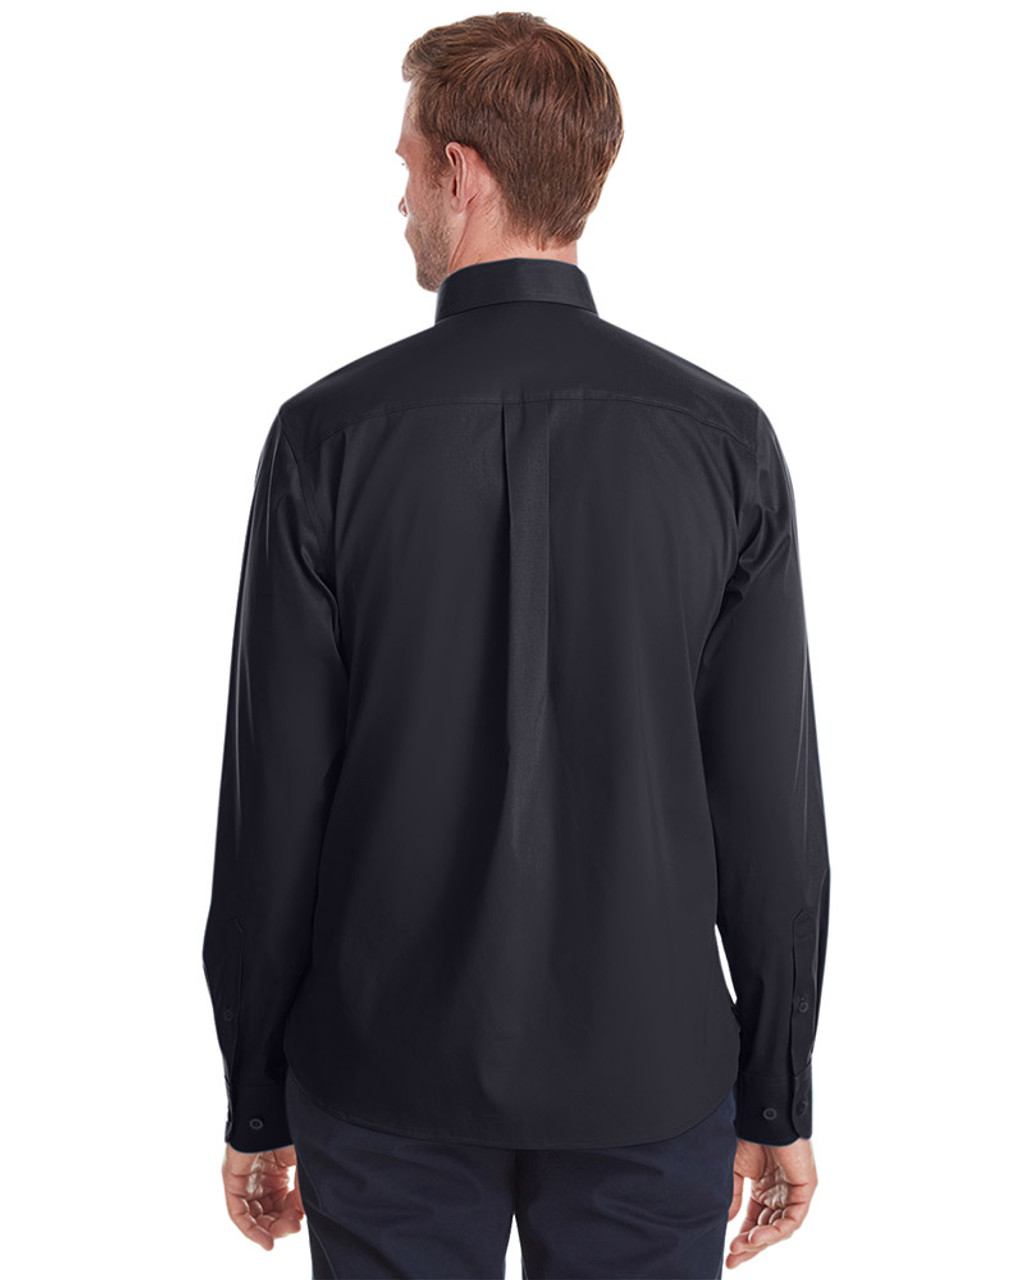 Black - back, DG561 Devon & Jones Men's Crown Collection™ Stretch Broadcloth Untucked Shirt | Blankclothing.ca